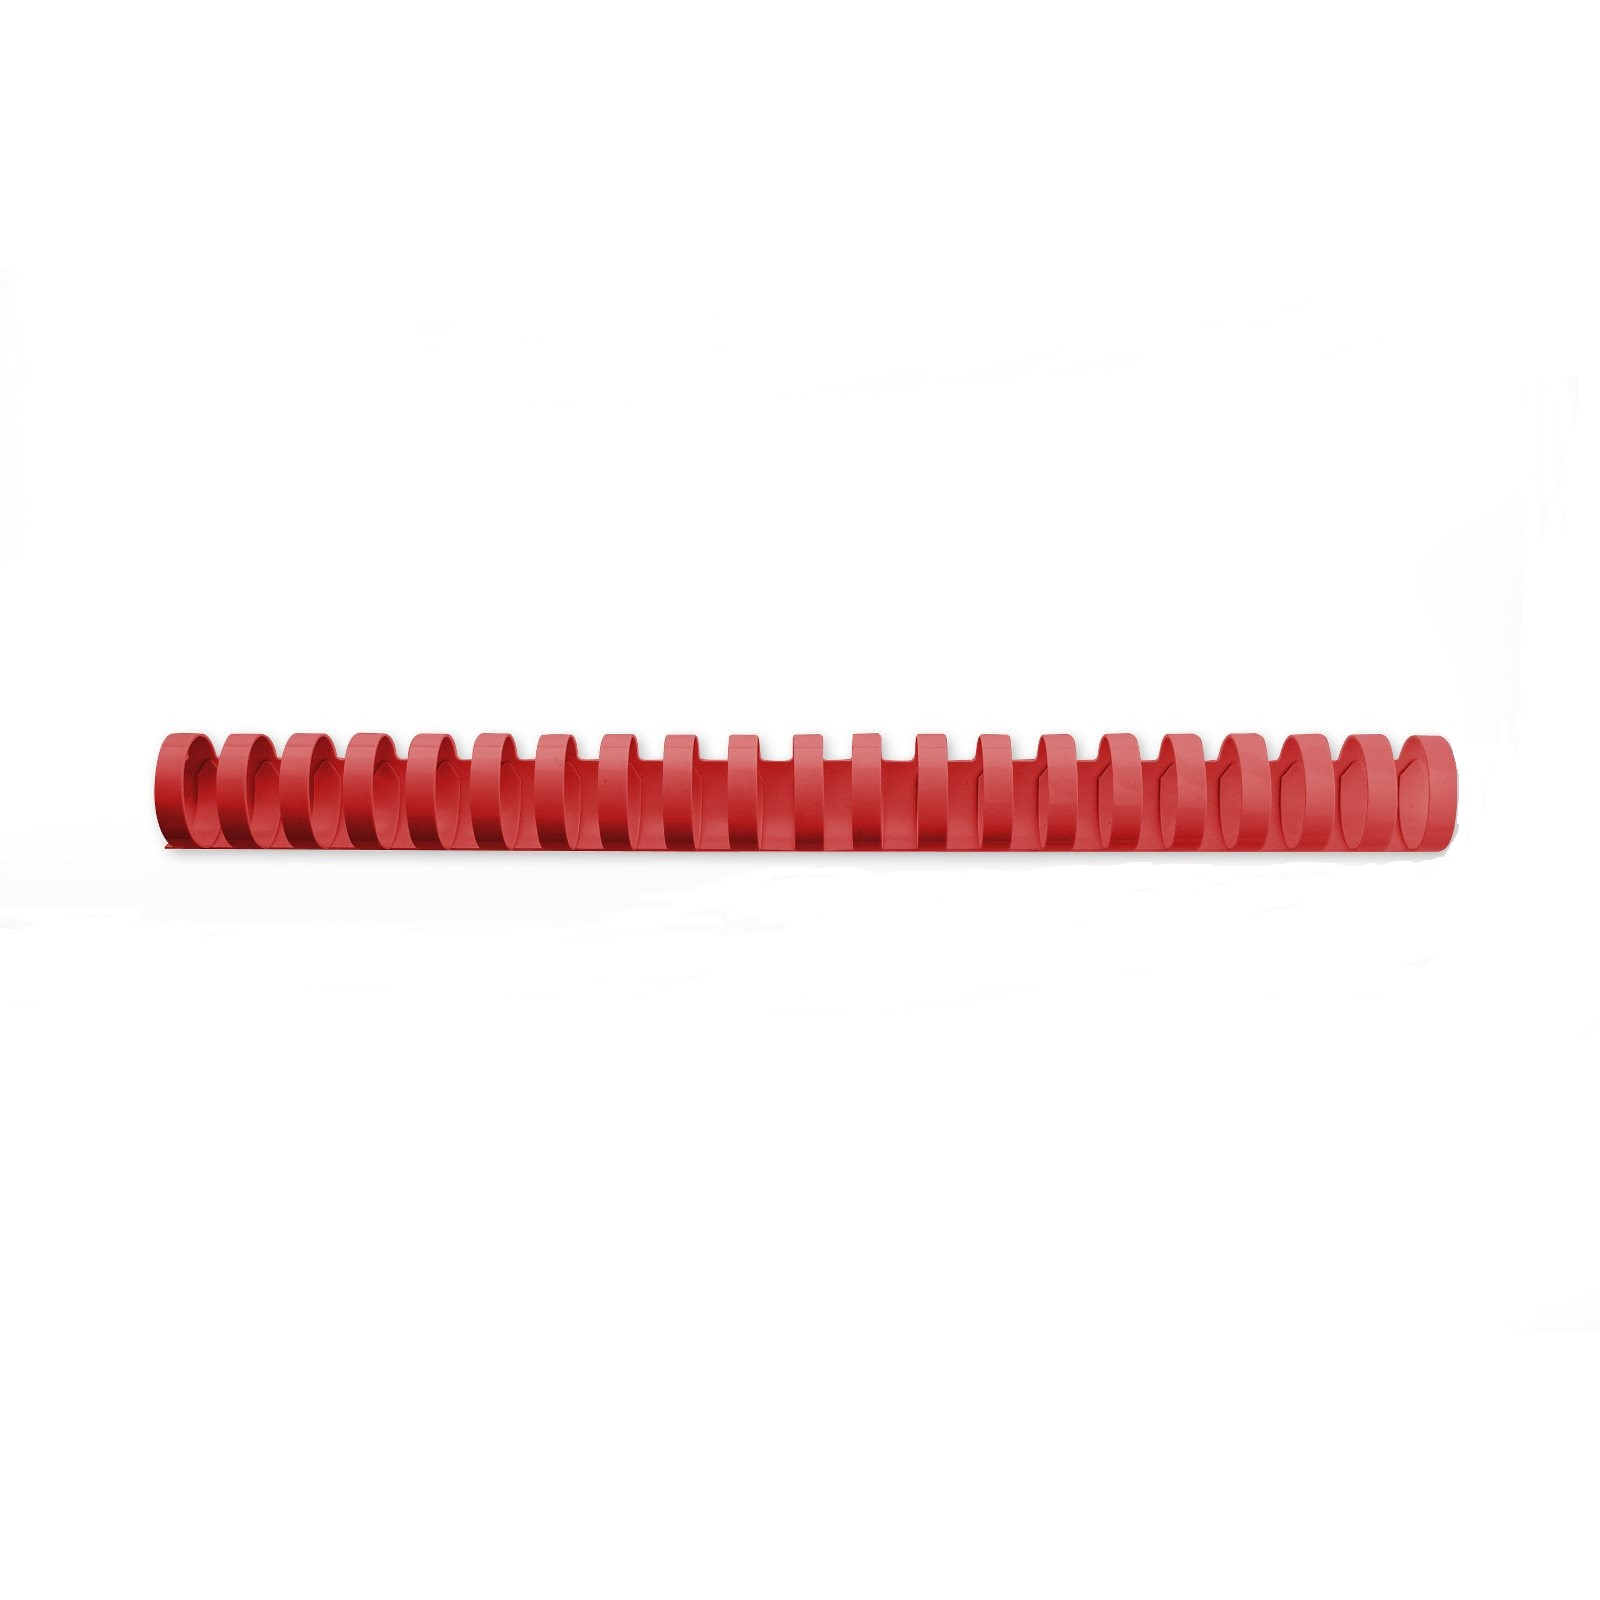 GBC Binding Combs 21 Ring A4 12mm Red 4028217 (PK100)